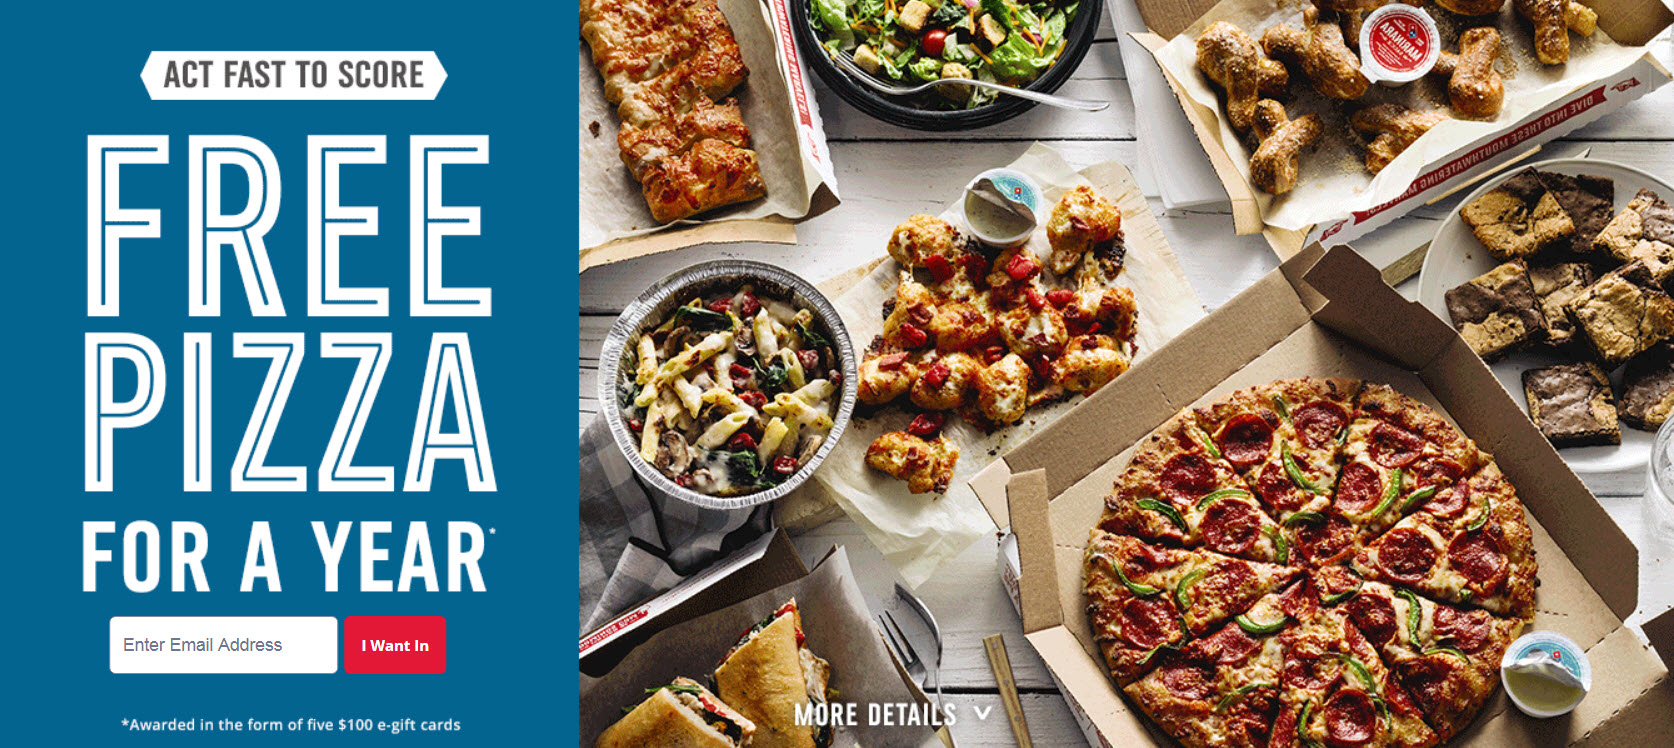 5,003 WINNERS! Enter the Dominos Fall Into Free Pizza Quikly Giveaway for your chance to win Free Domino's e-gift cards